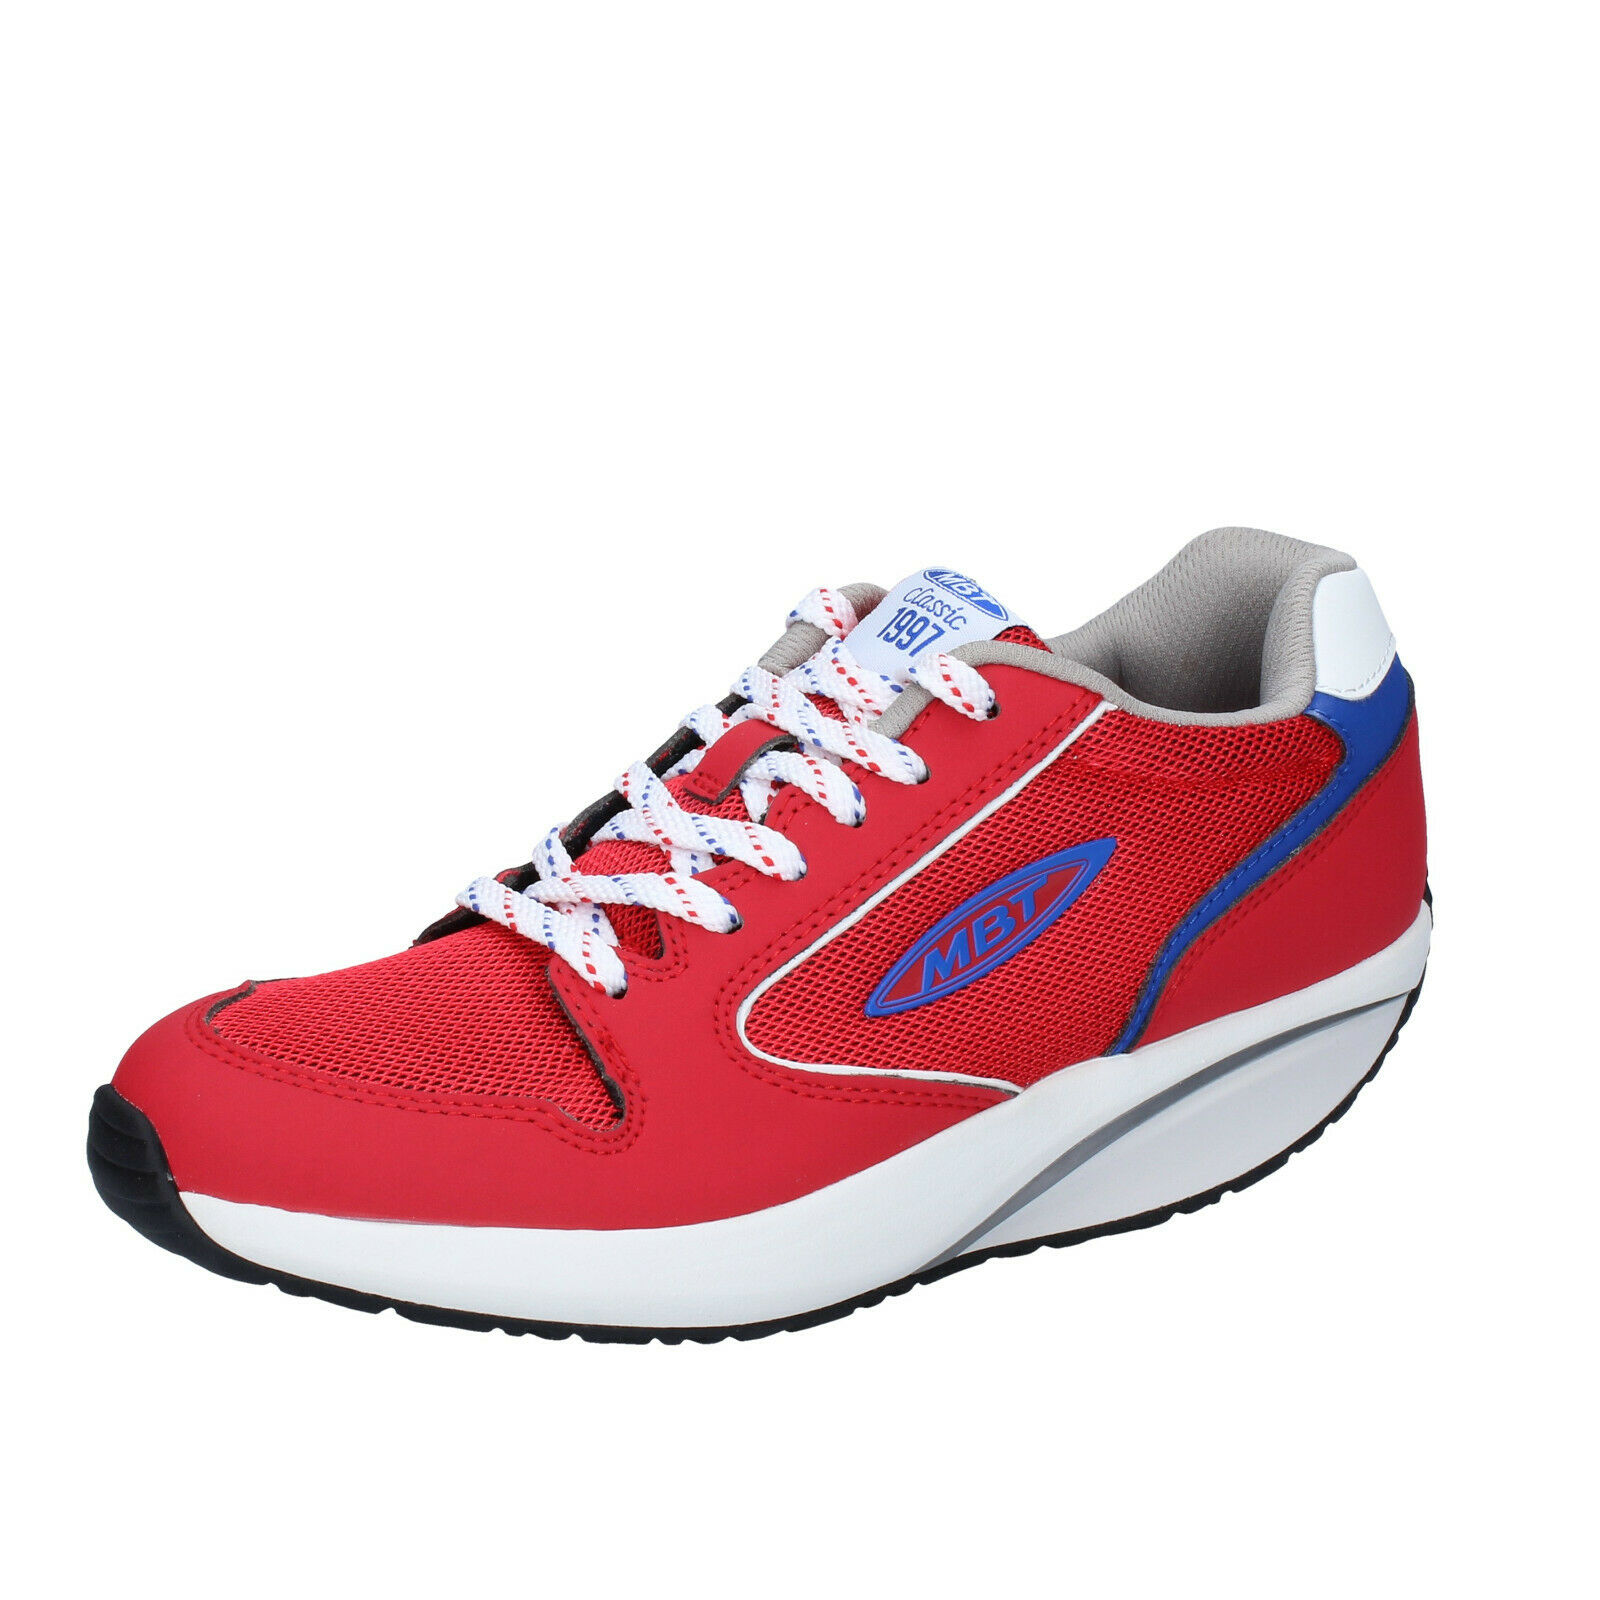 Womens shoes MBT 5 () sneakers red leather textile BS382-38